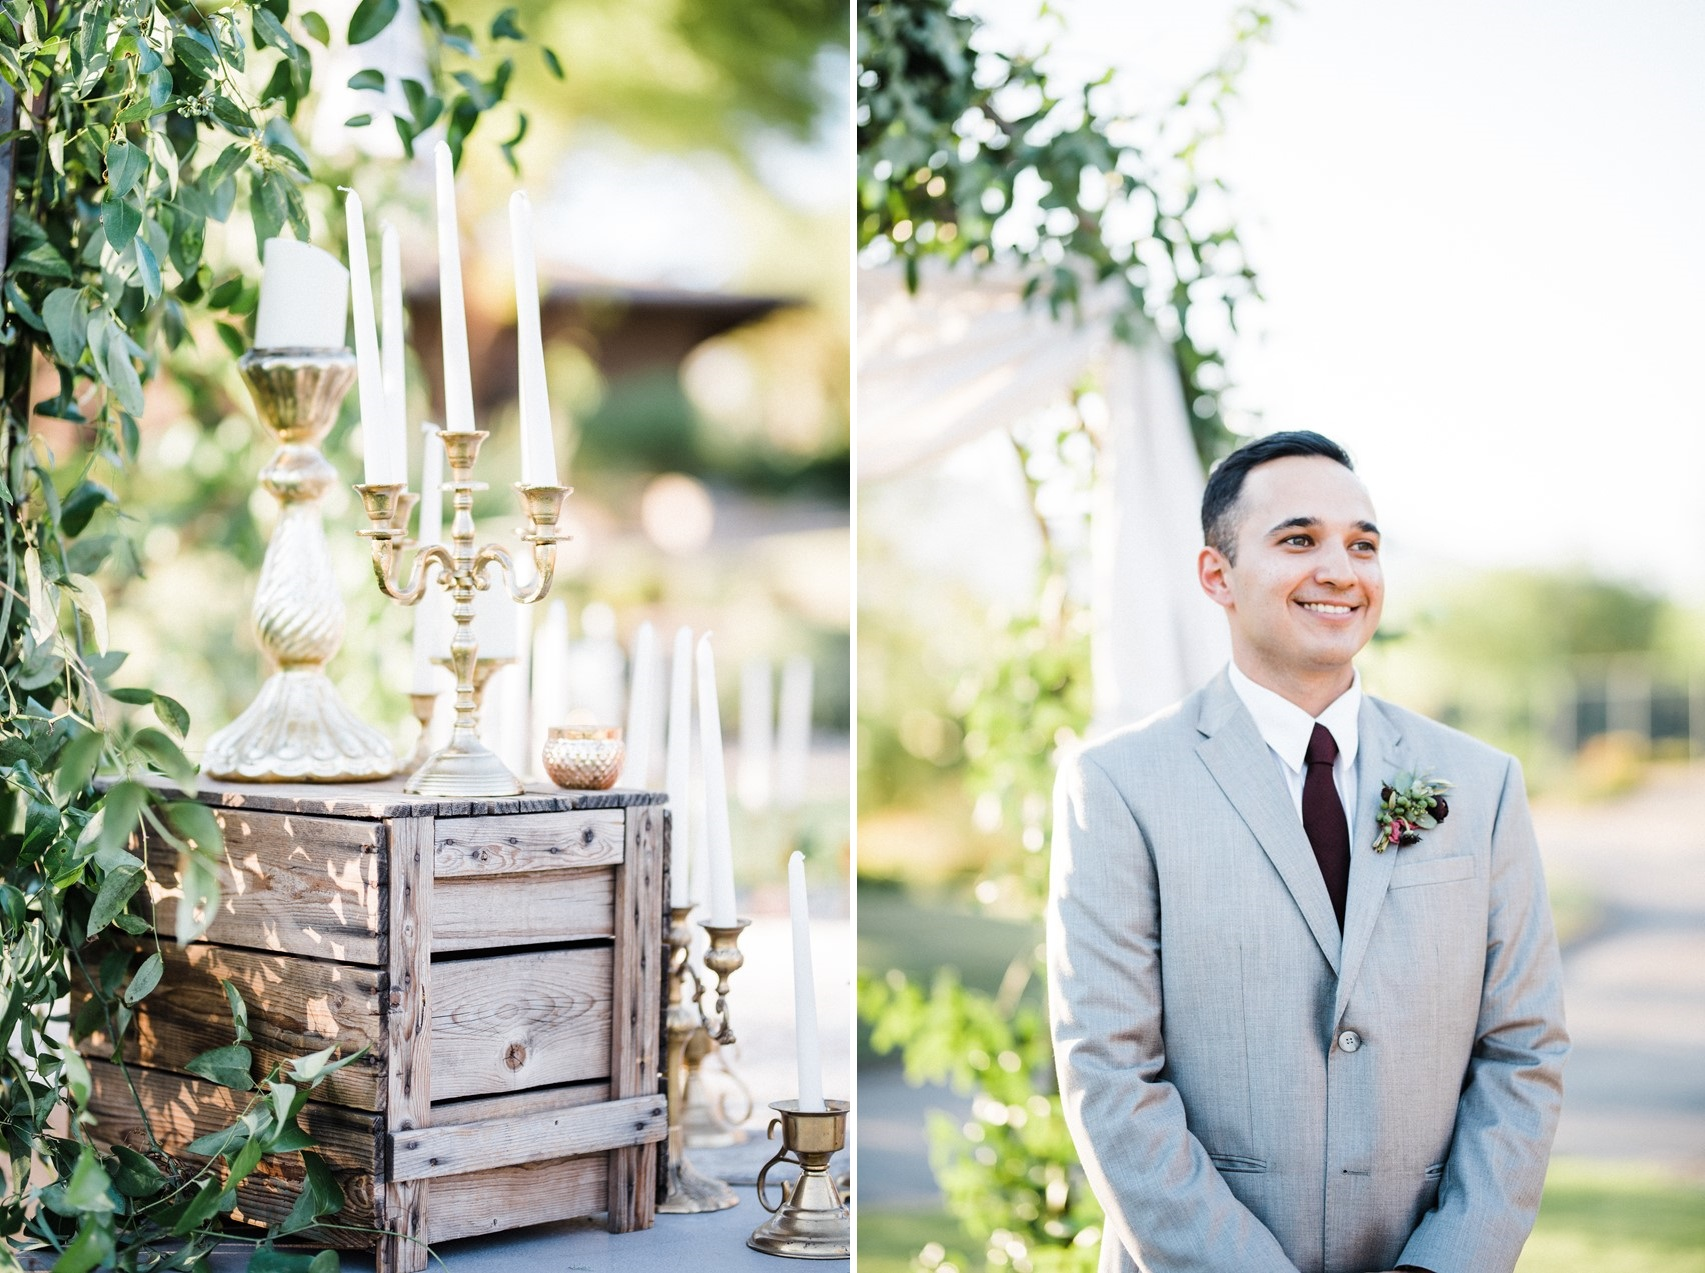 Garden Wedding Ceremony Decor